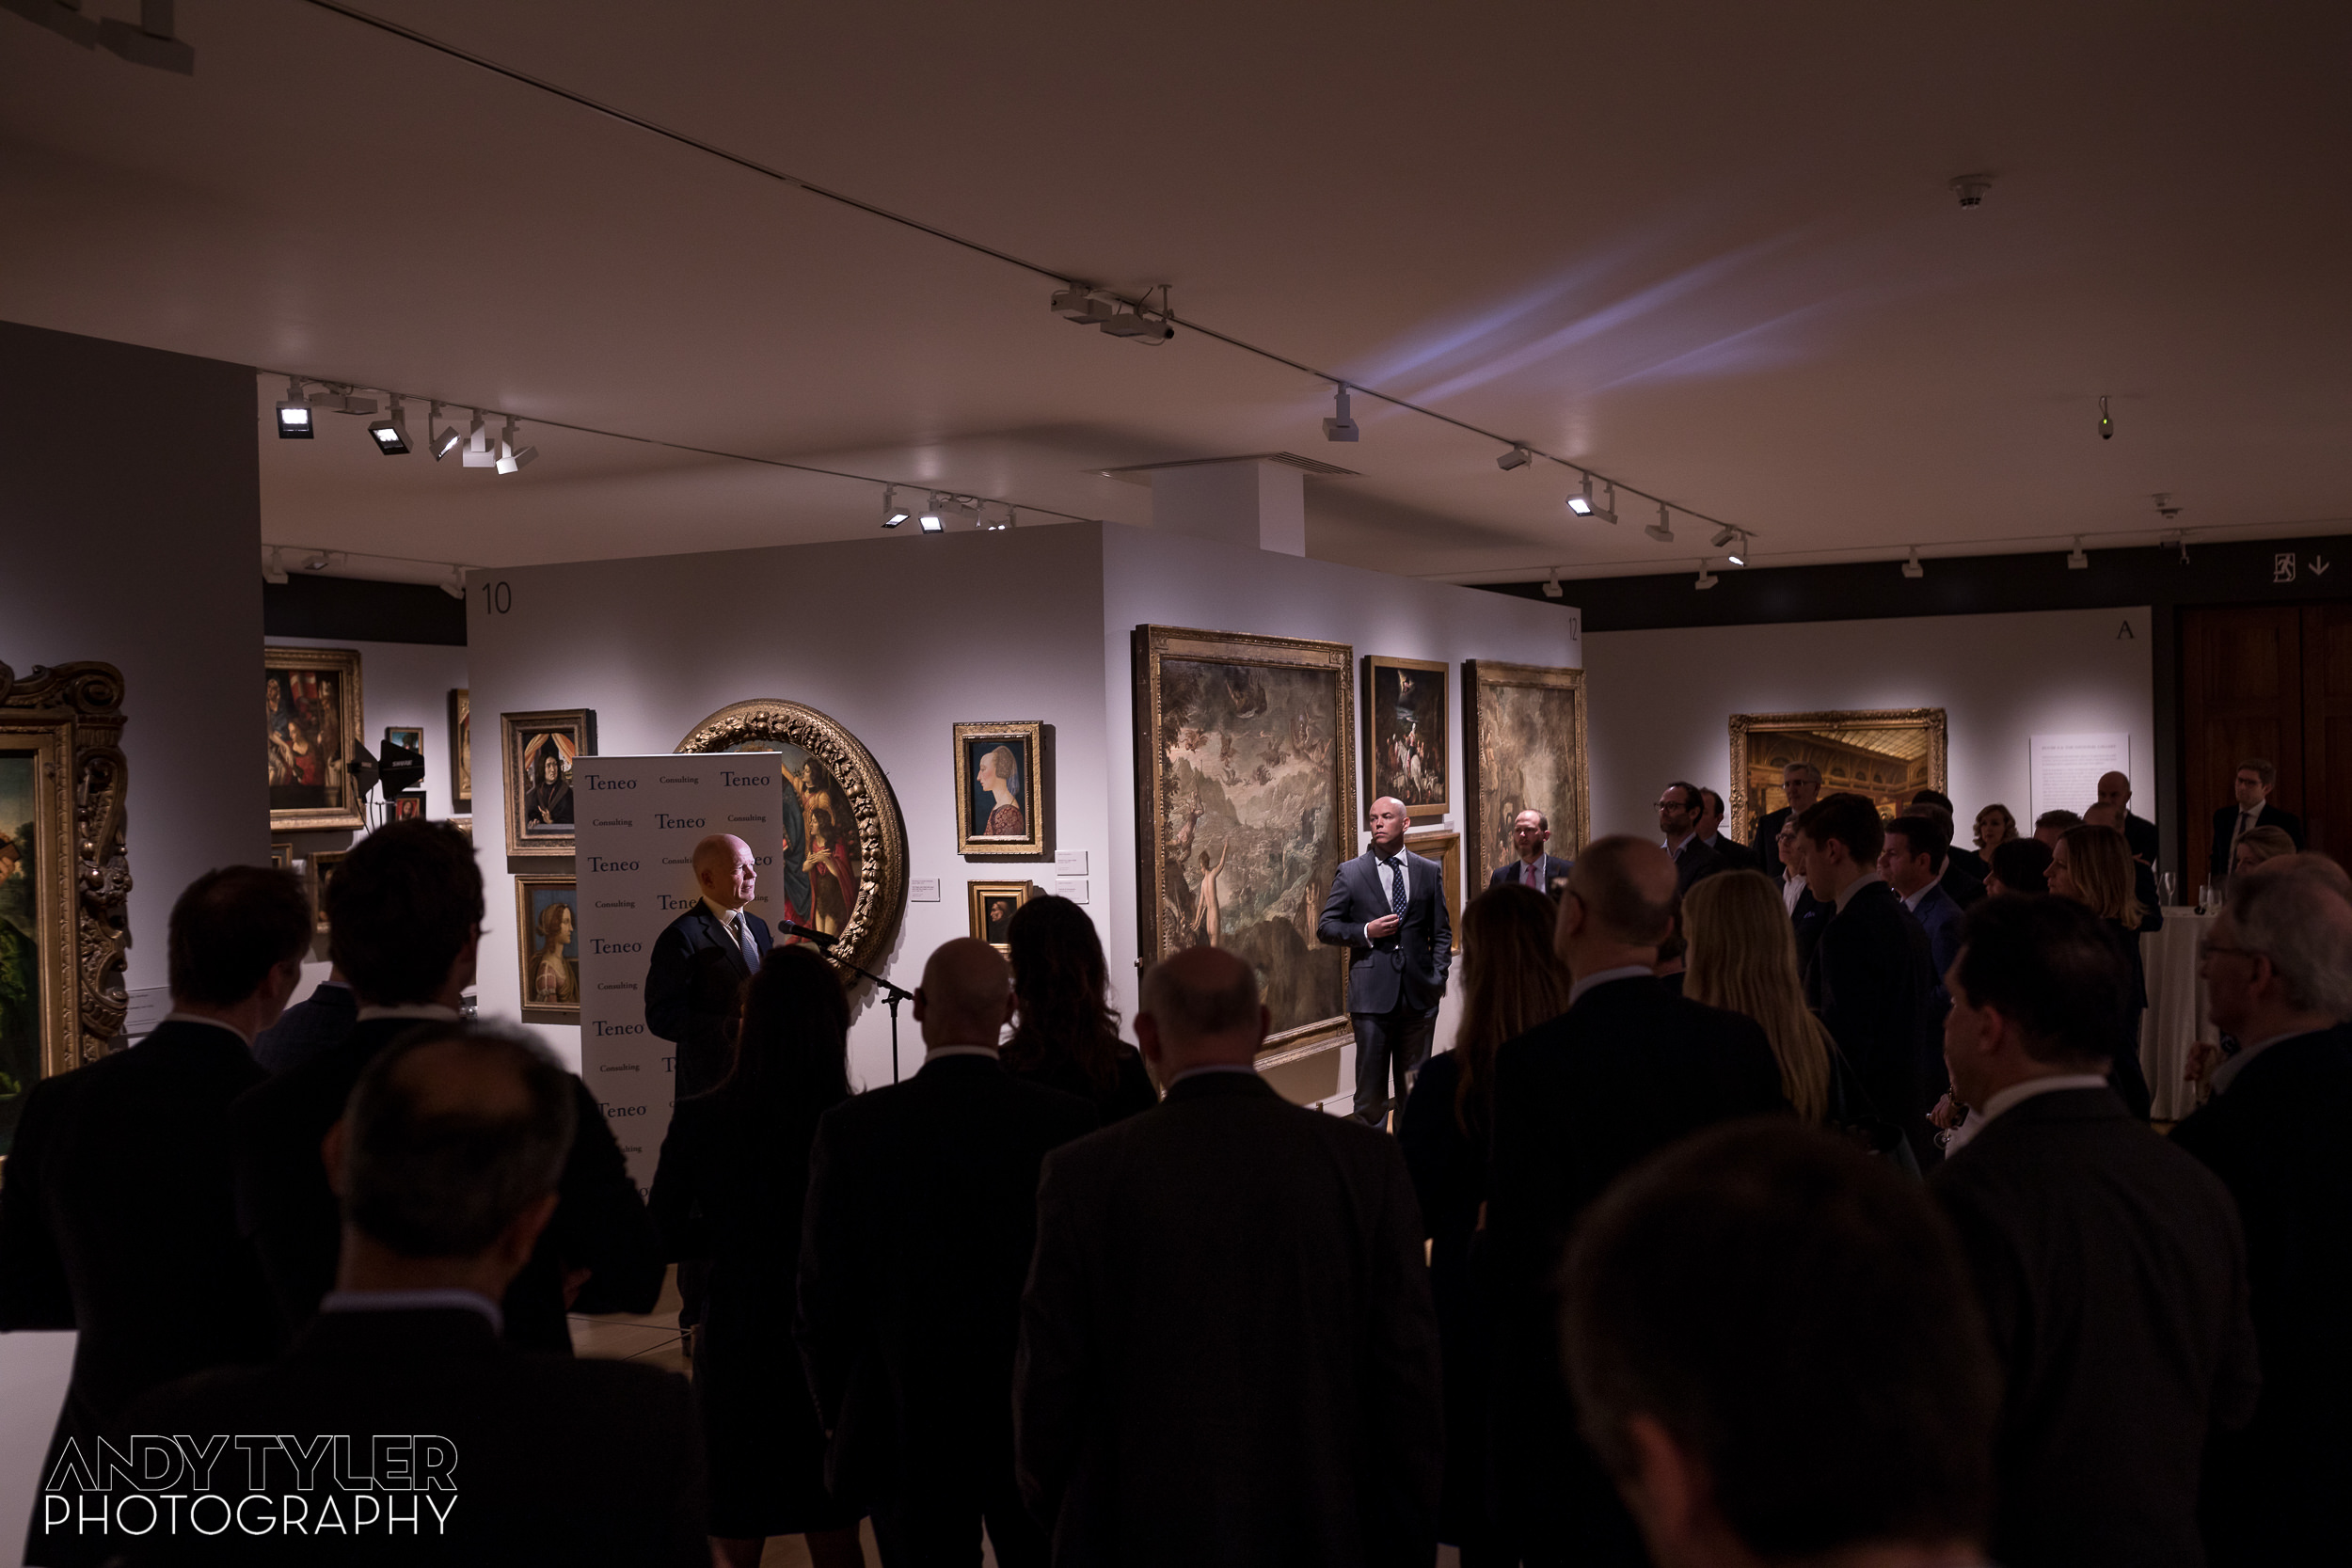 Andy_Tyler_Photography_London_Corporate_Reception_015_Andy_Tyler_Photography_Teneo_National_Gallery_096_5DB_0146-Edit.jpg